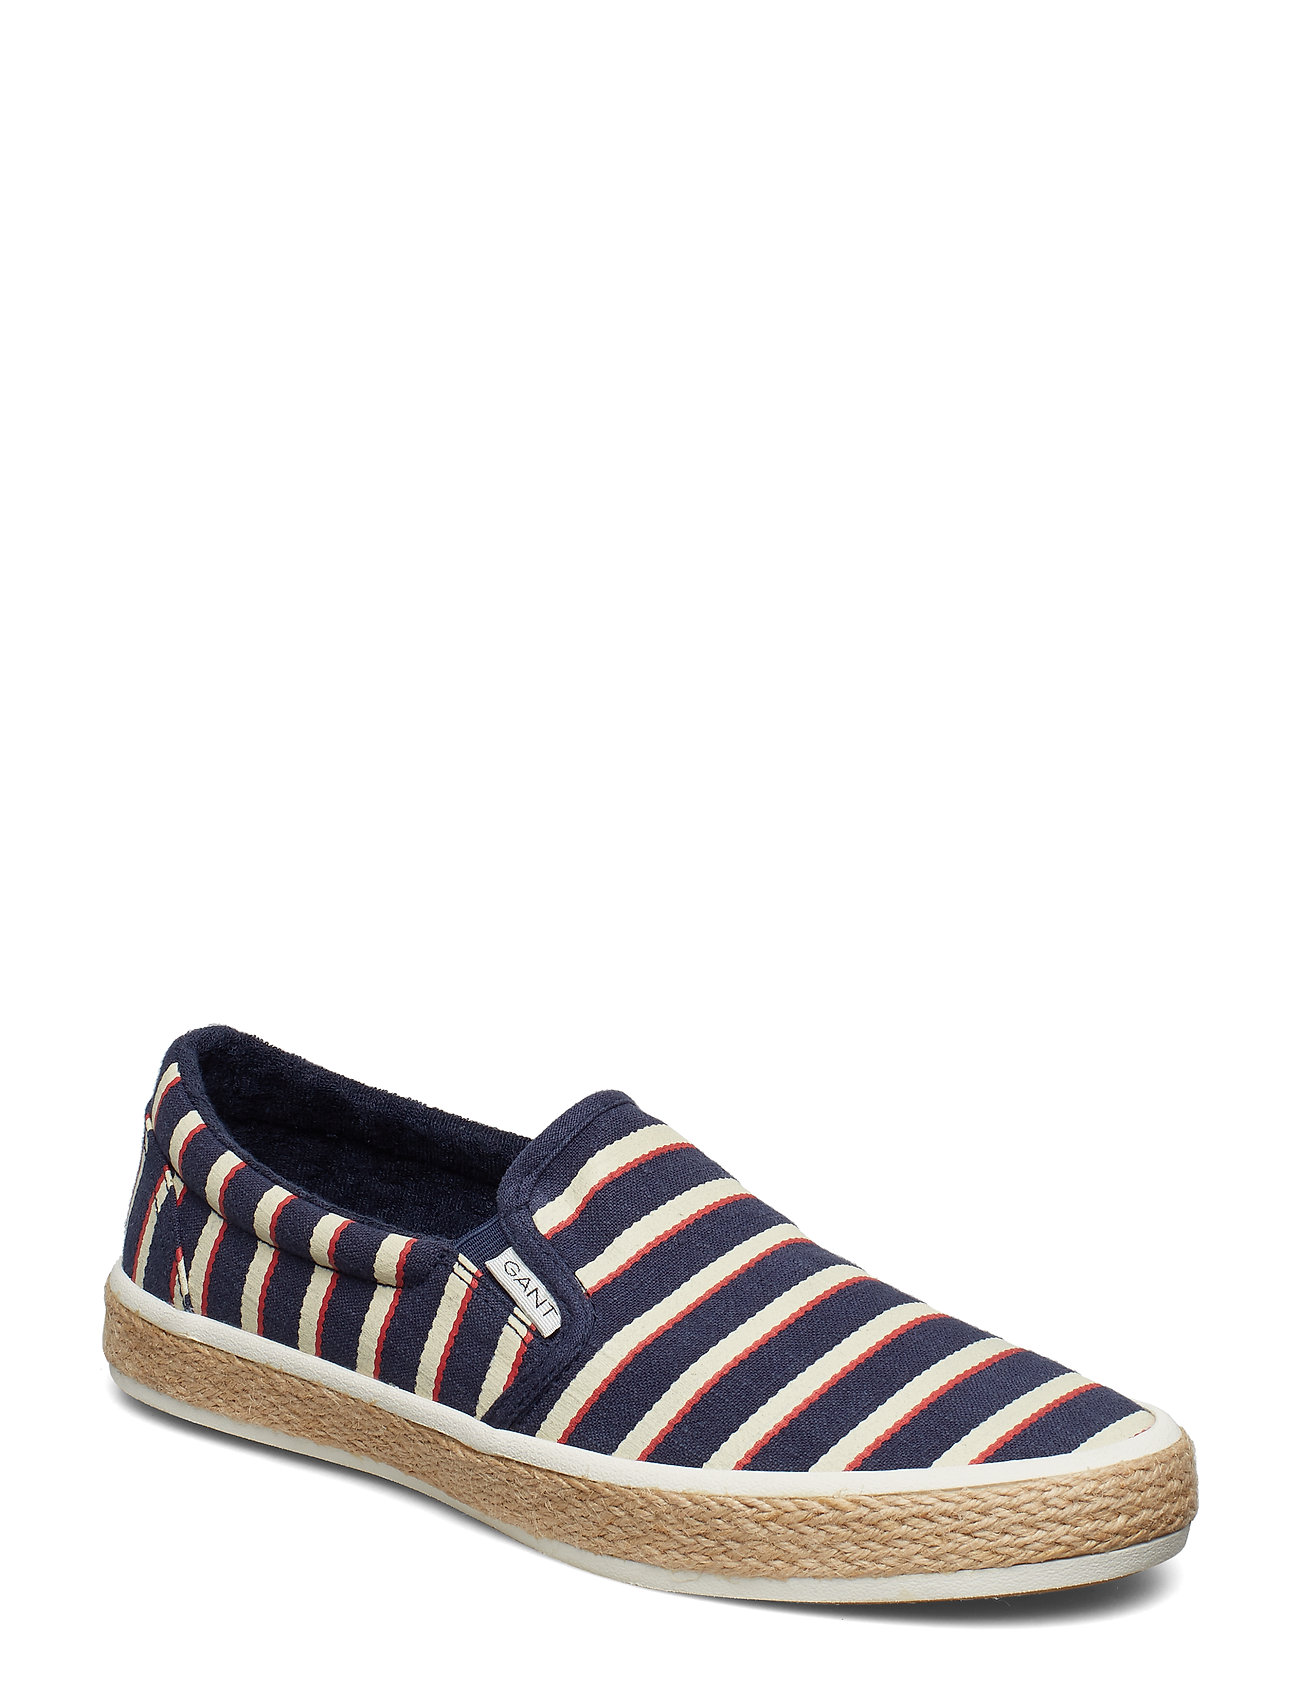 GANT Fresno Slip-on shoes